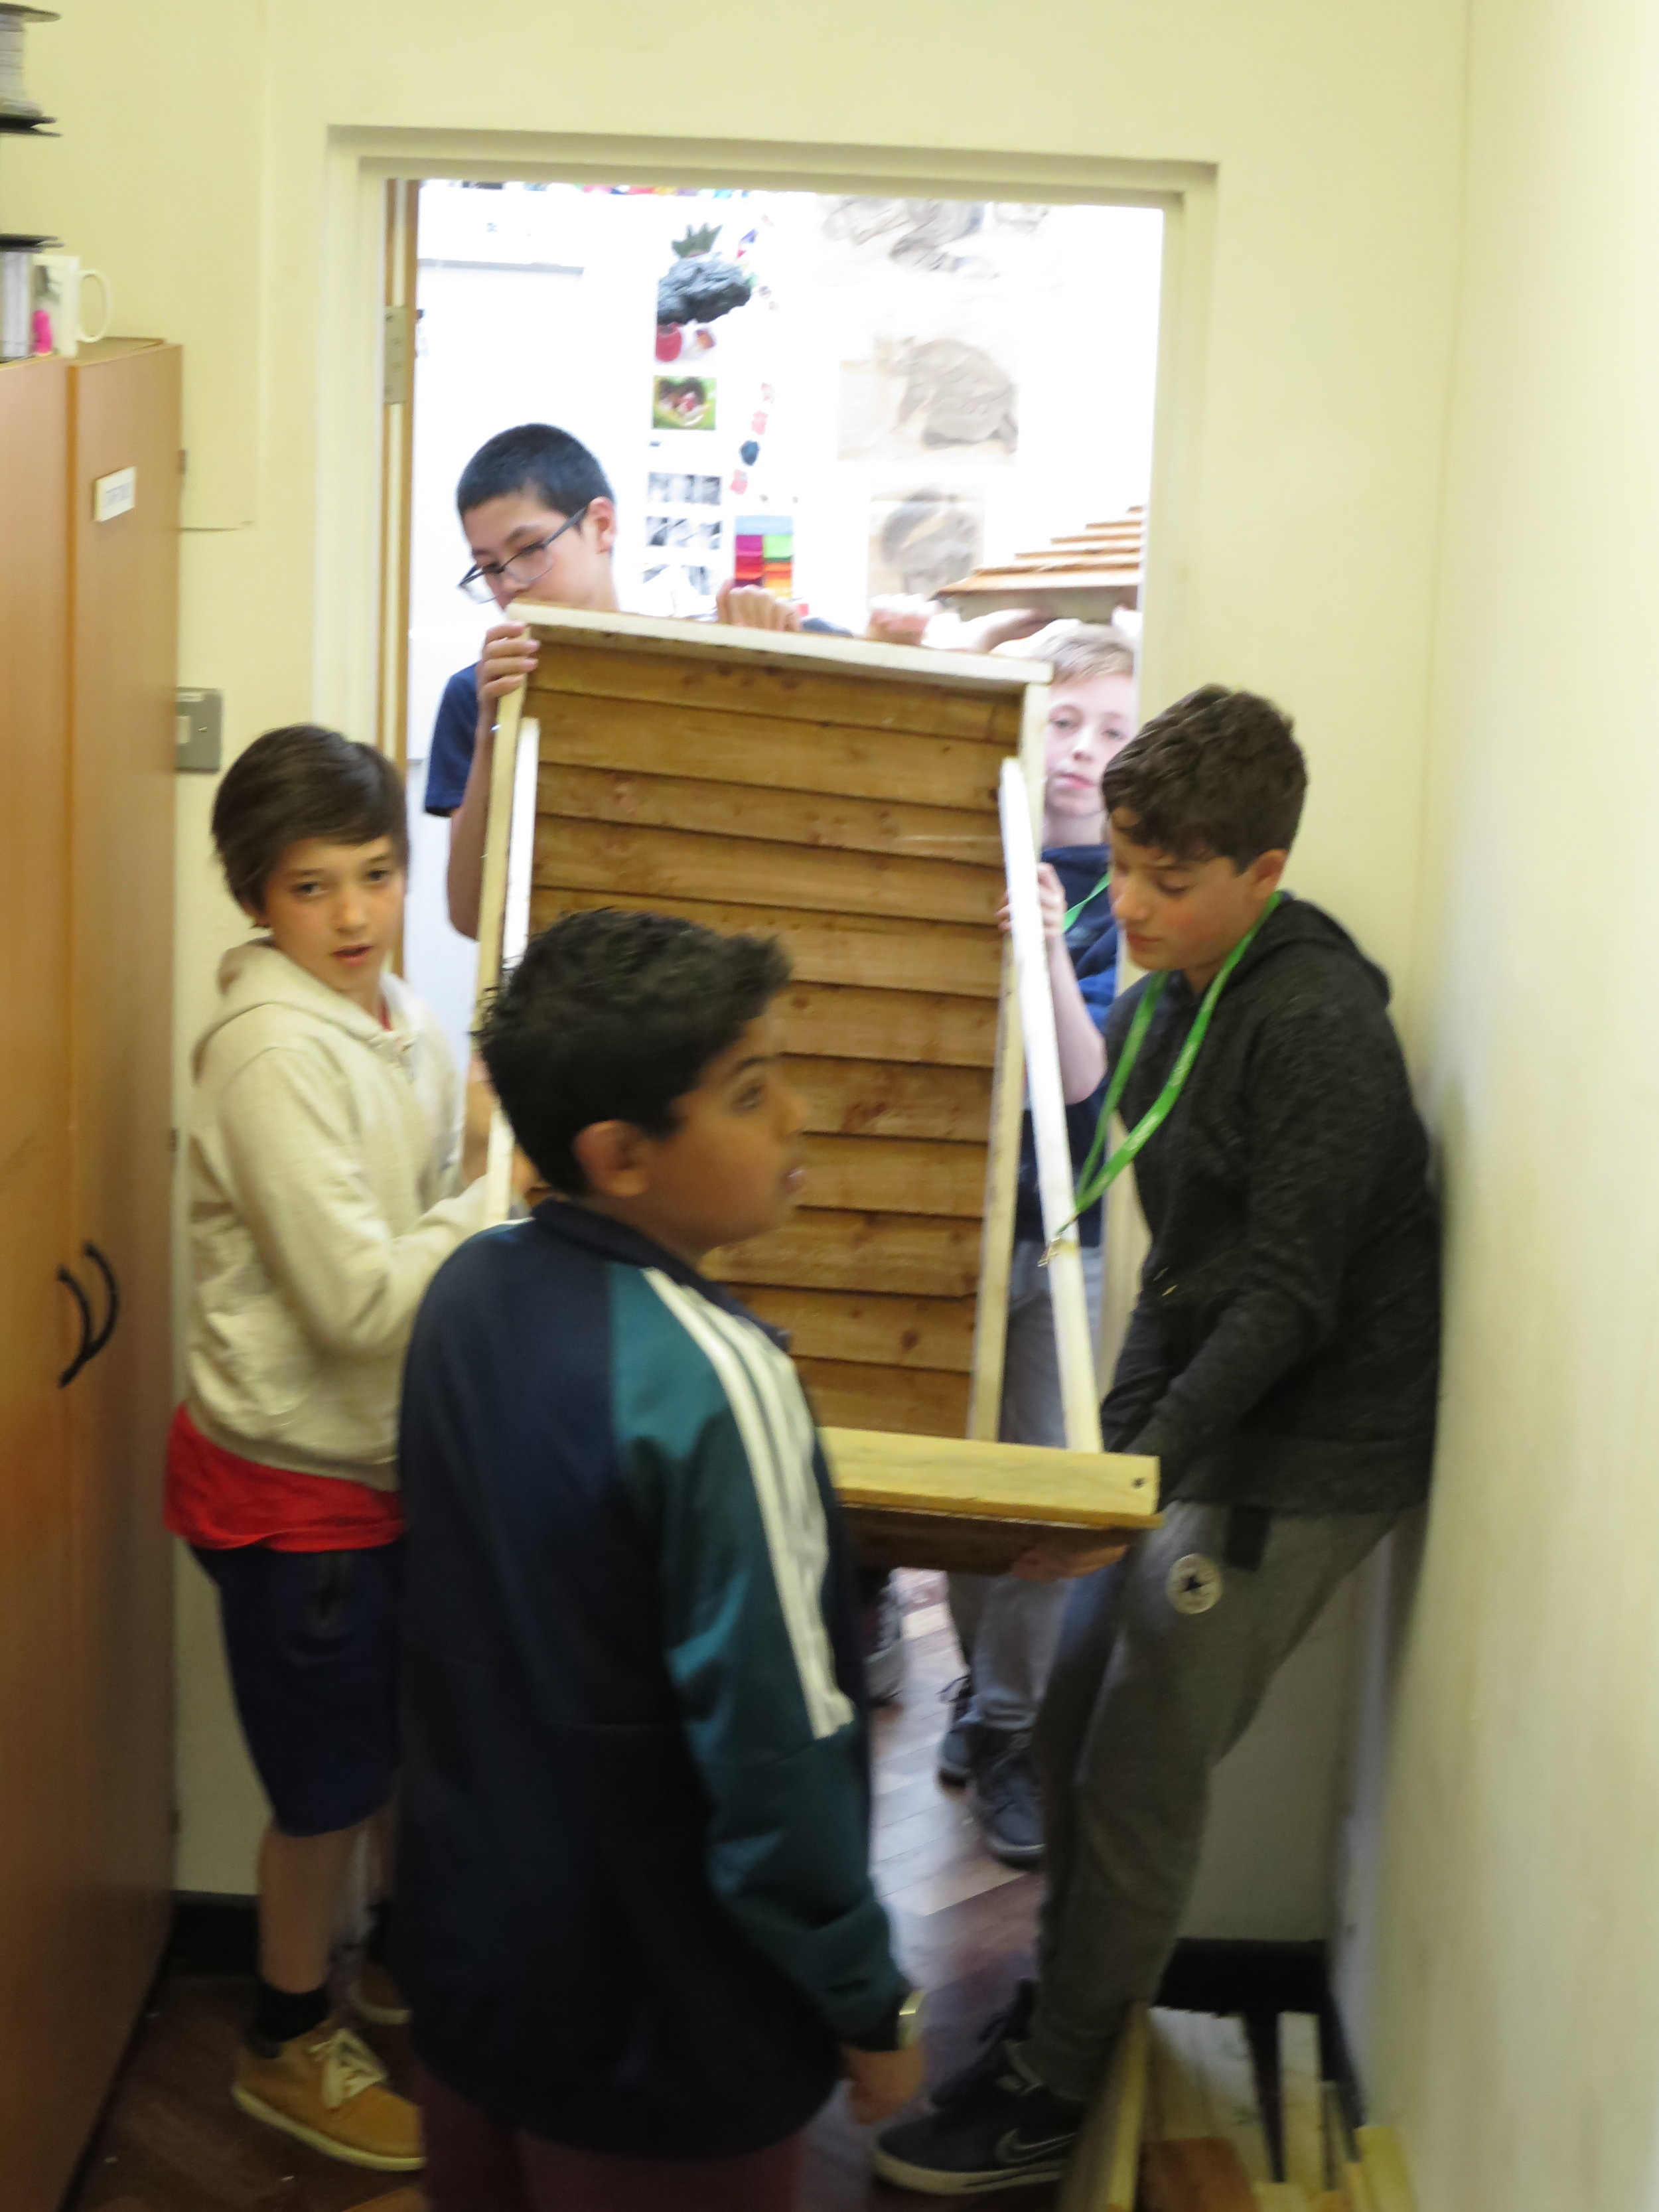 Copy of the panels had to fit through the classroom doors